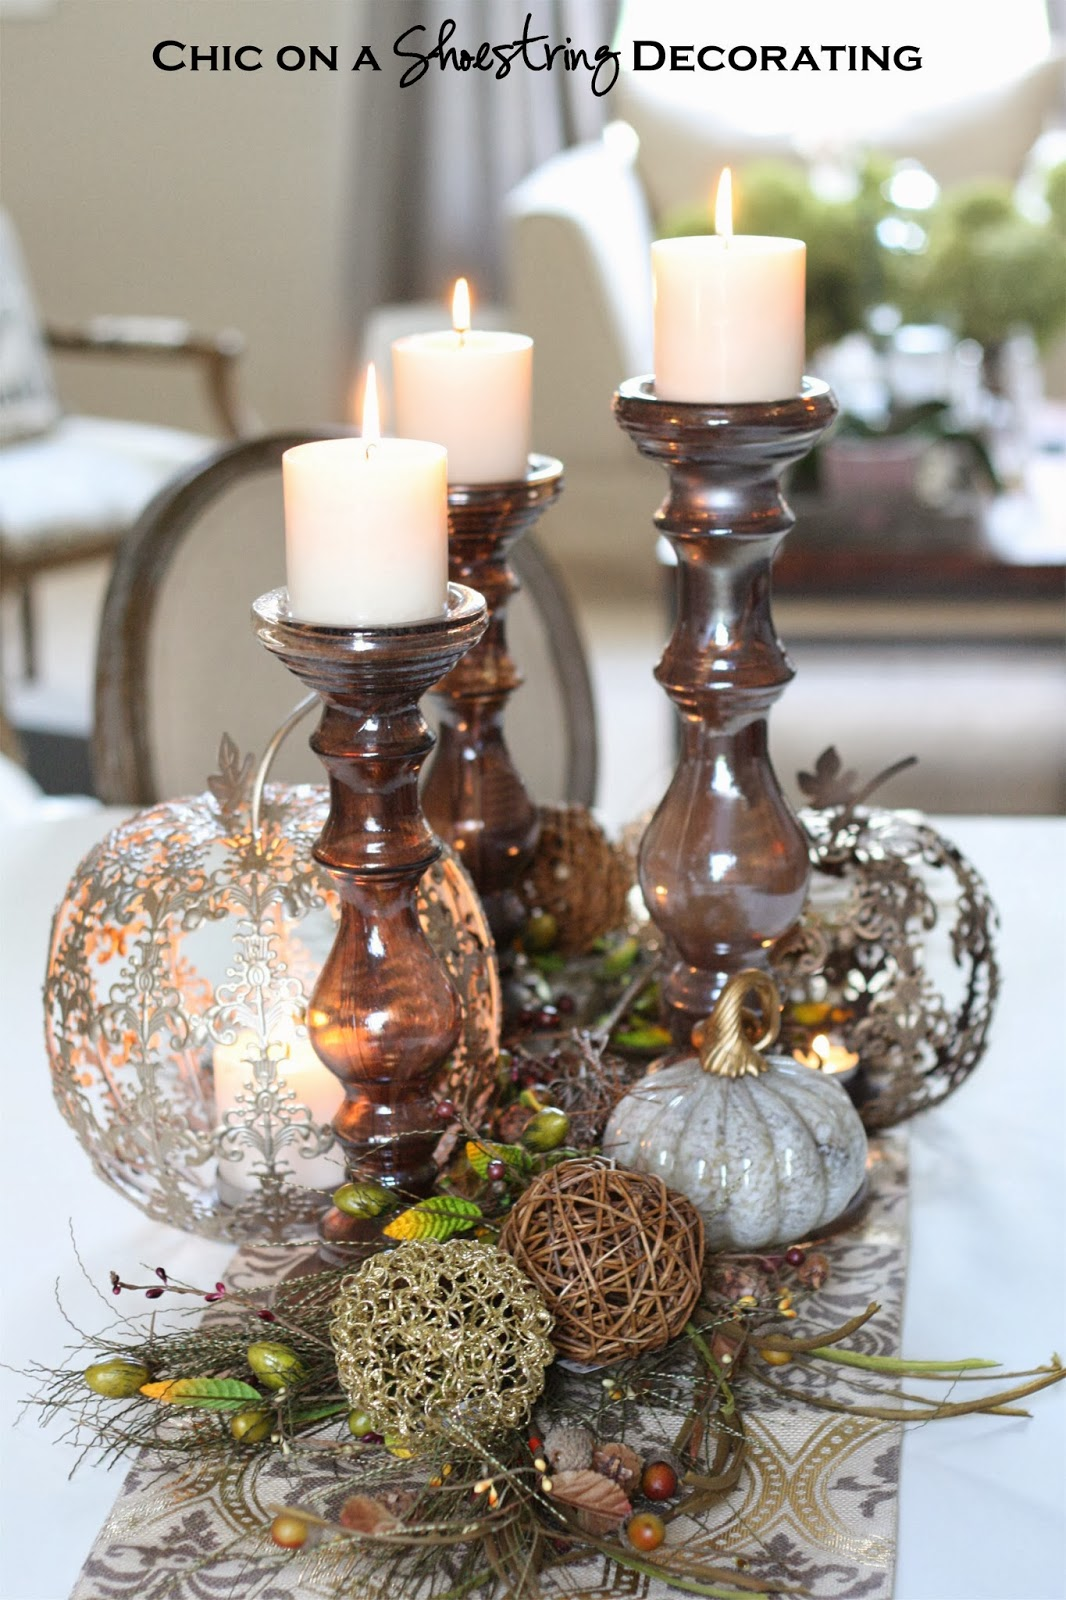 Pier1 Dining Table: Chic On A Shoestring Decorating: Fall Centerpiece And Pier